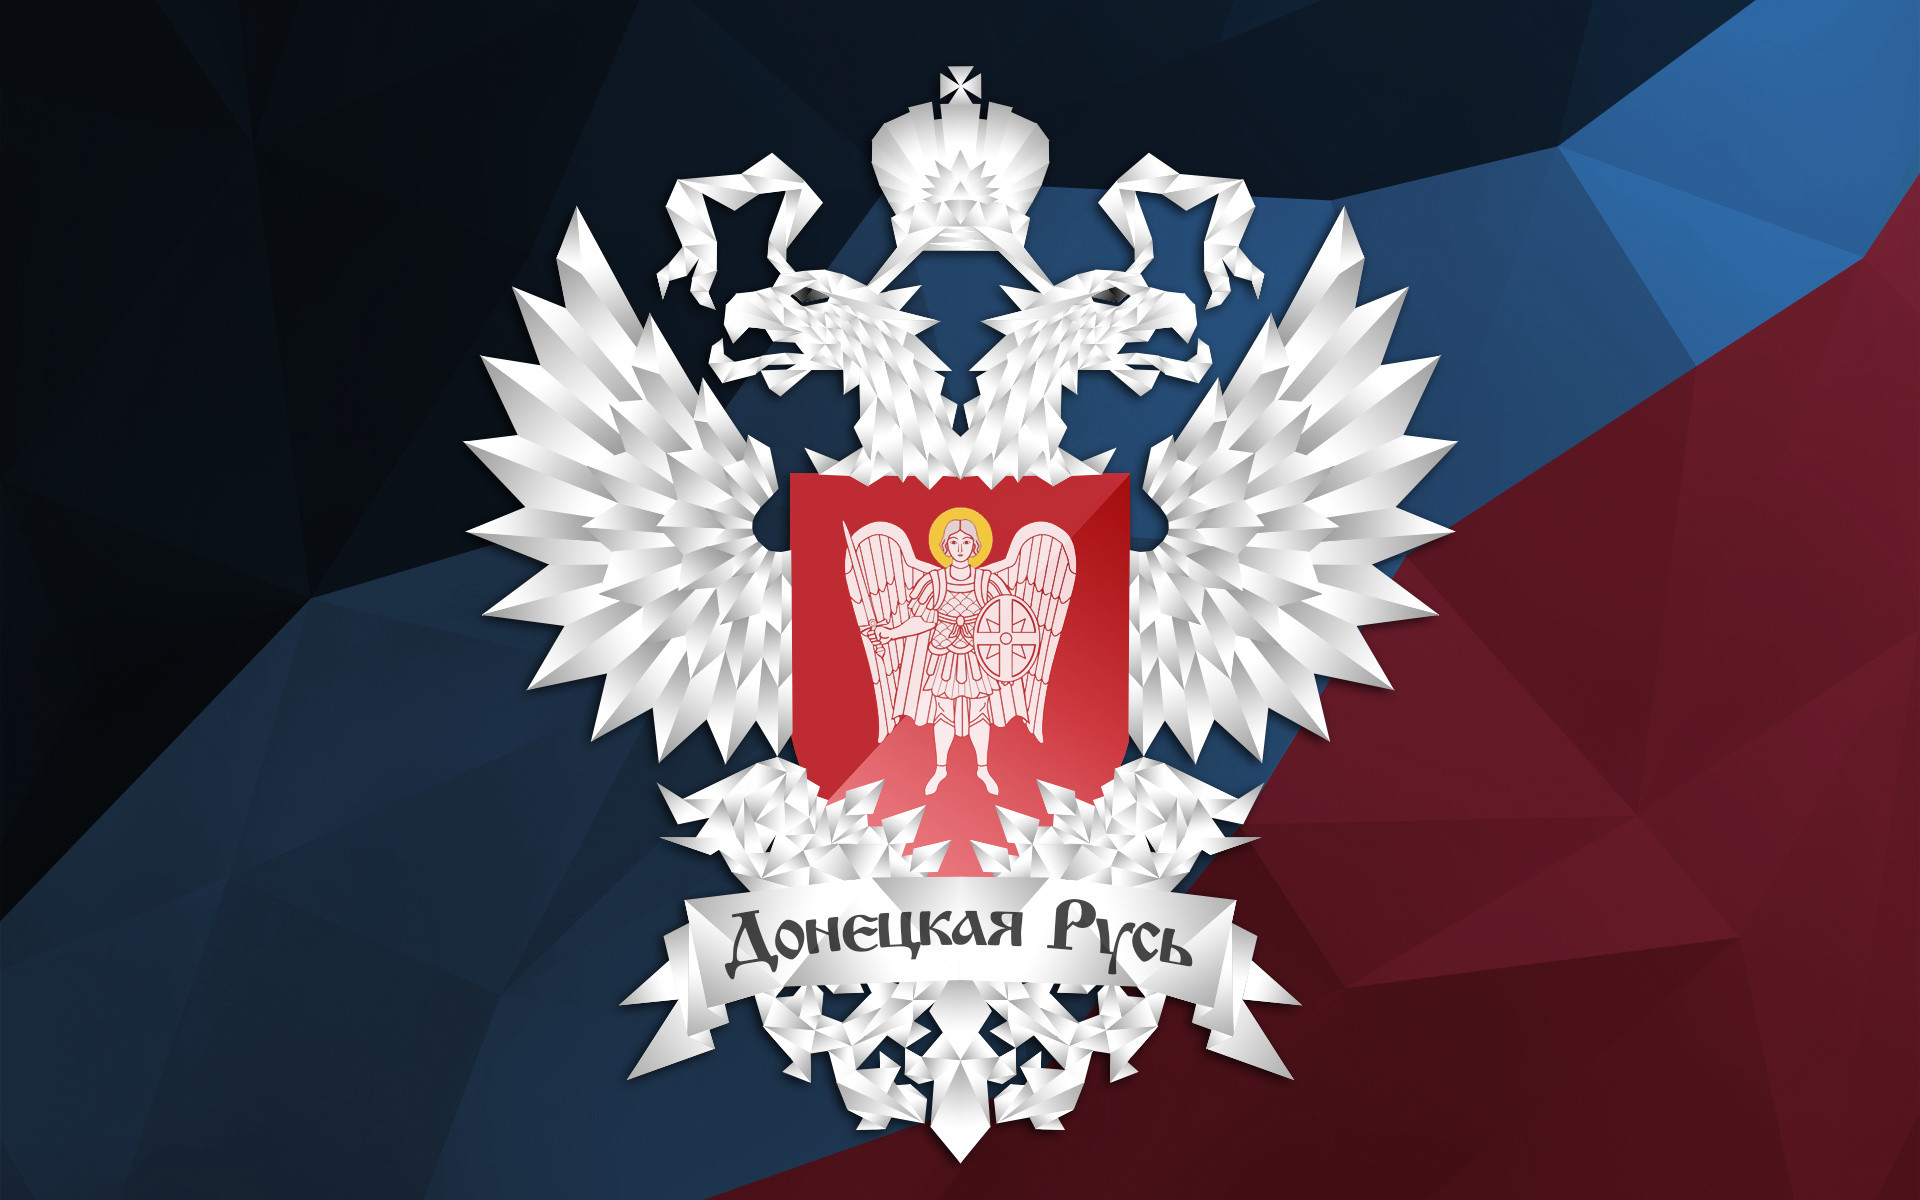 1920x1200 Pictures Donetsk DPR DNR Double-headed eagle Flag